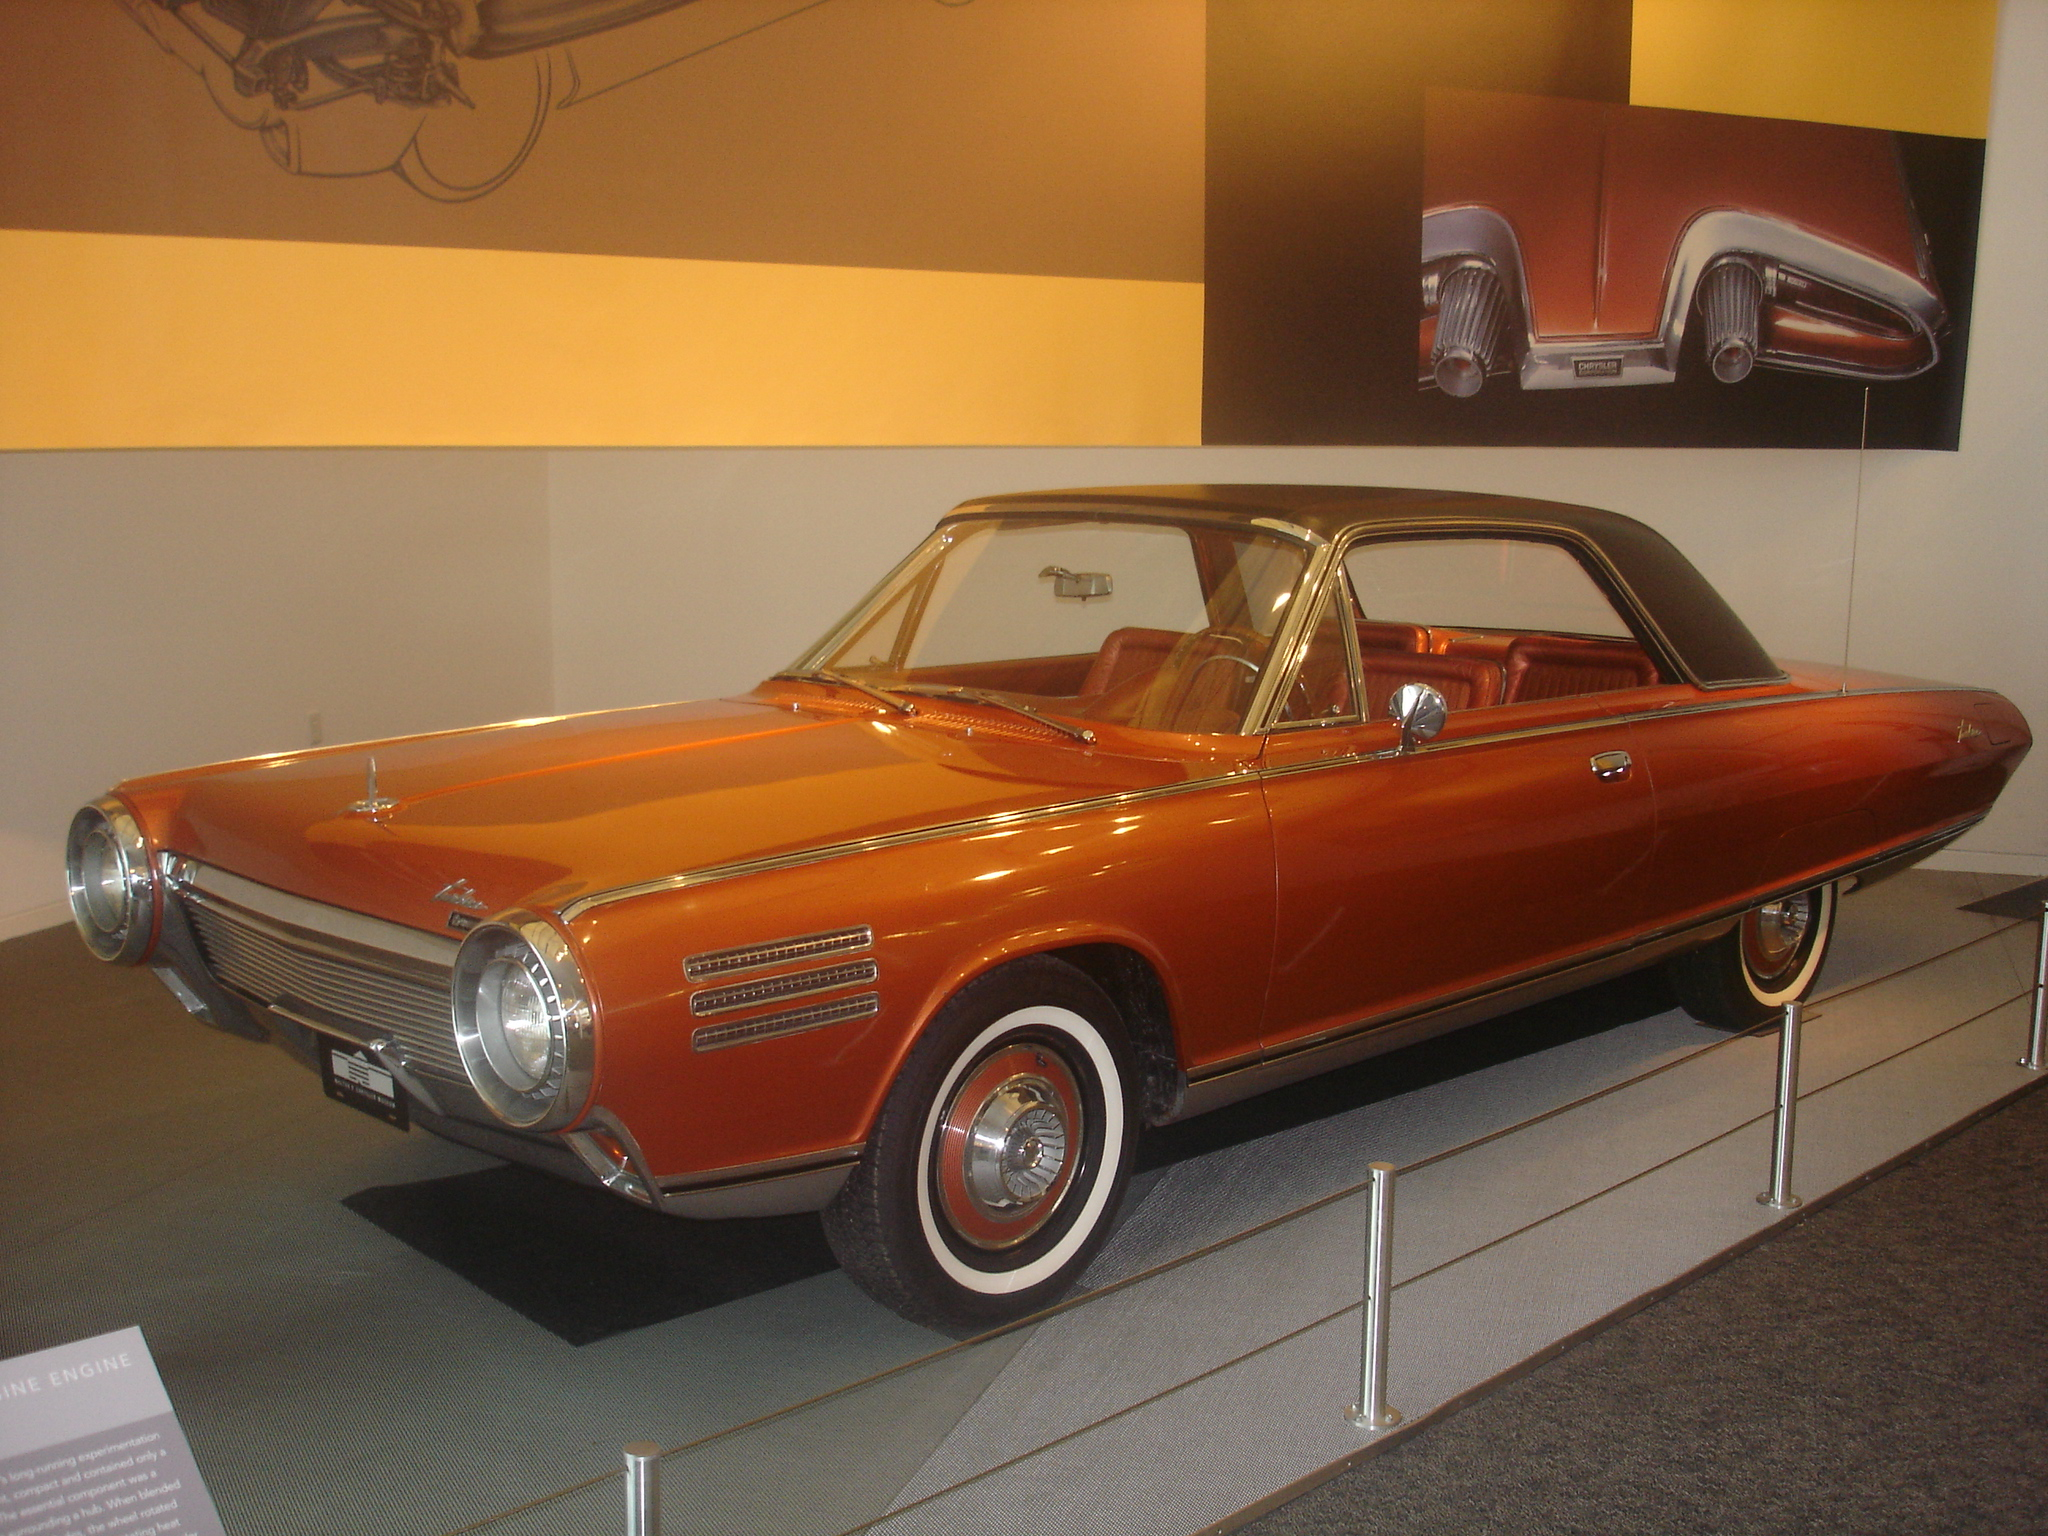 Chrysler Turbine Car Wikipedia Auto Diagram 1970 Plymouth Wiring 1960 Chevy Truck